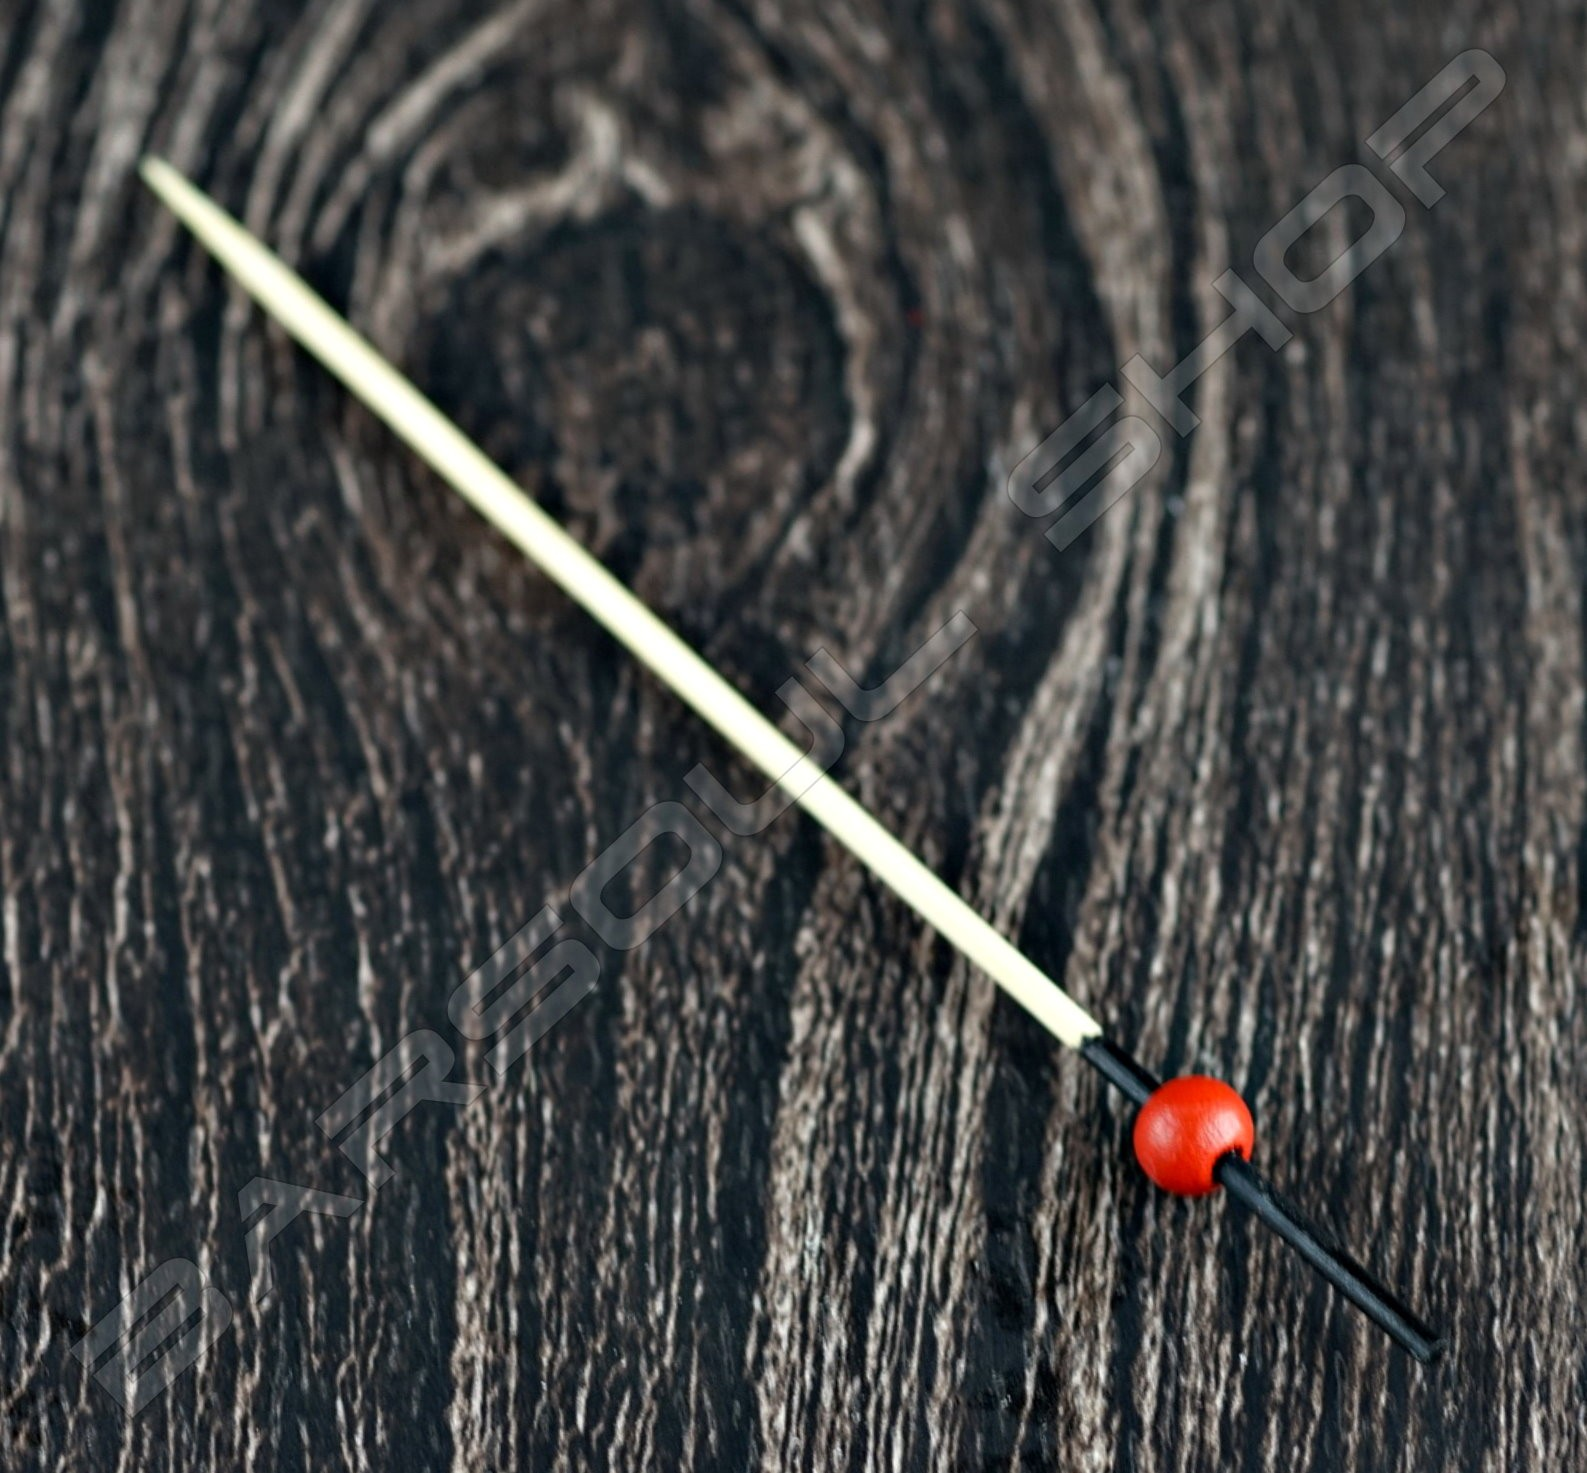 黑頭紅珠裝飾物插(120mm)約100支 Black red bead cocktail stick